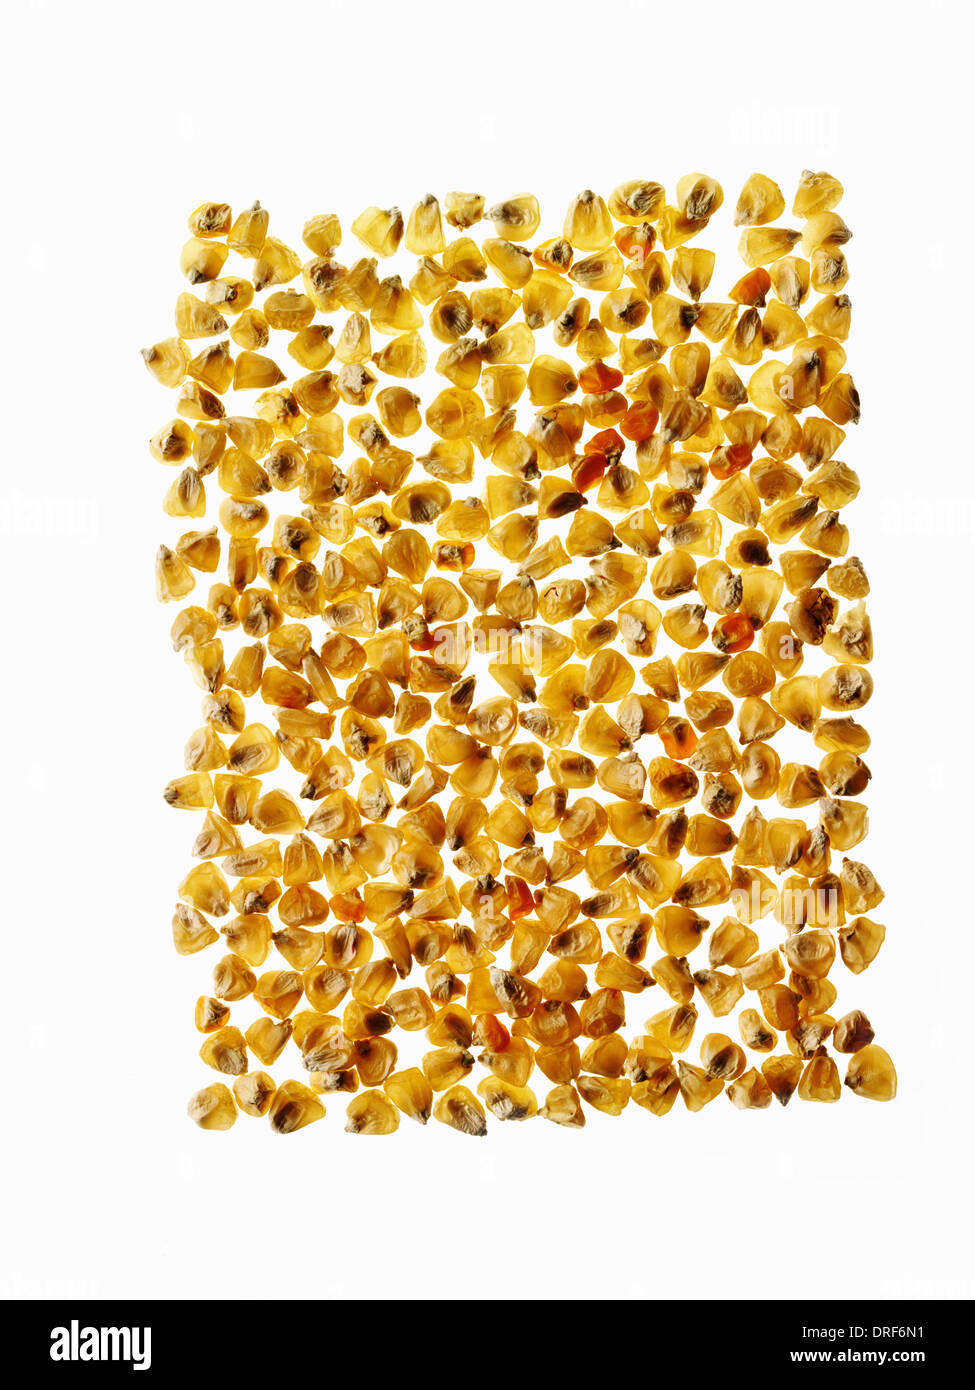 group of corn maize kernels arranged in pattern - Stock Image